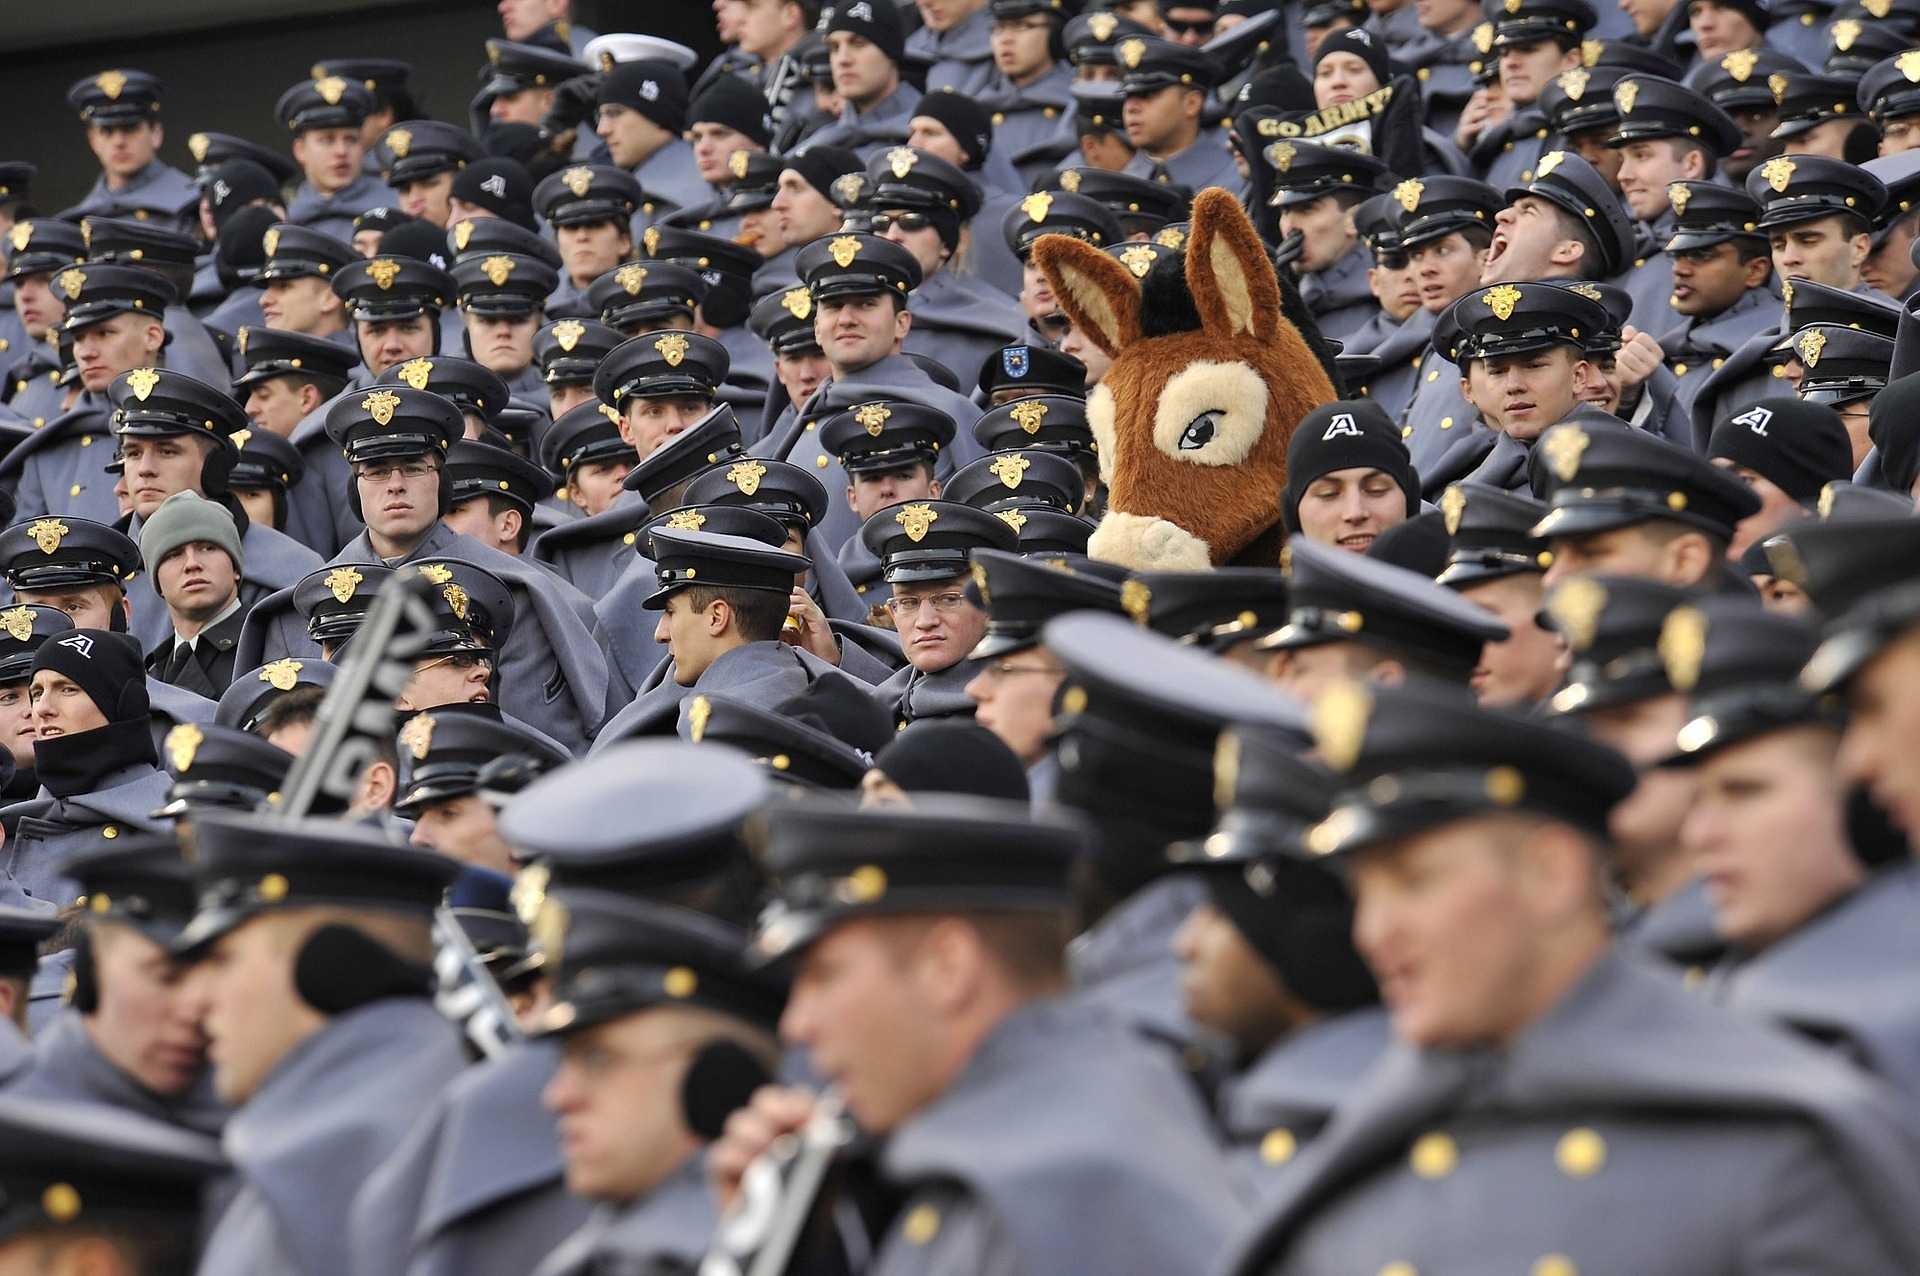 Image: Person in donkey mask stands out in crowd of cadets in uniform